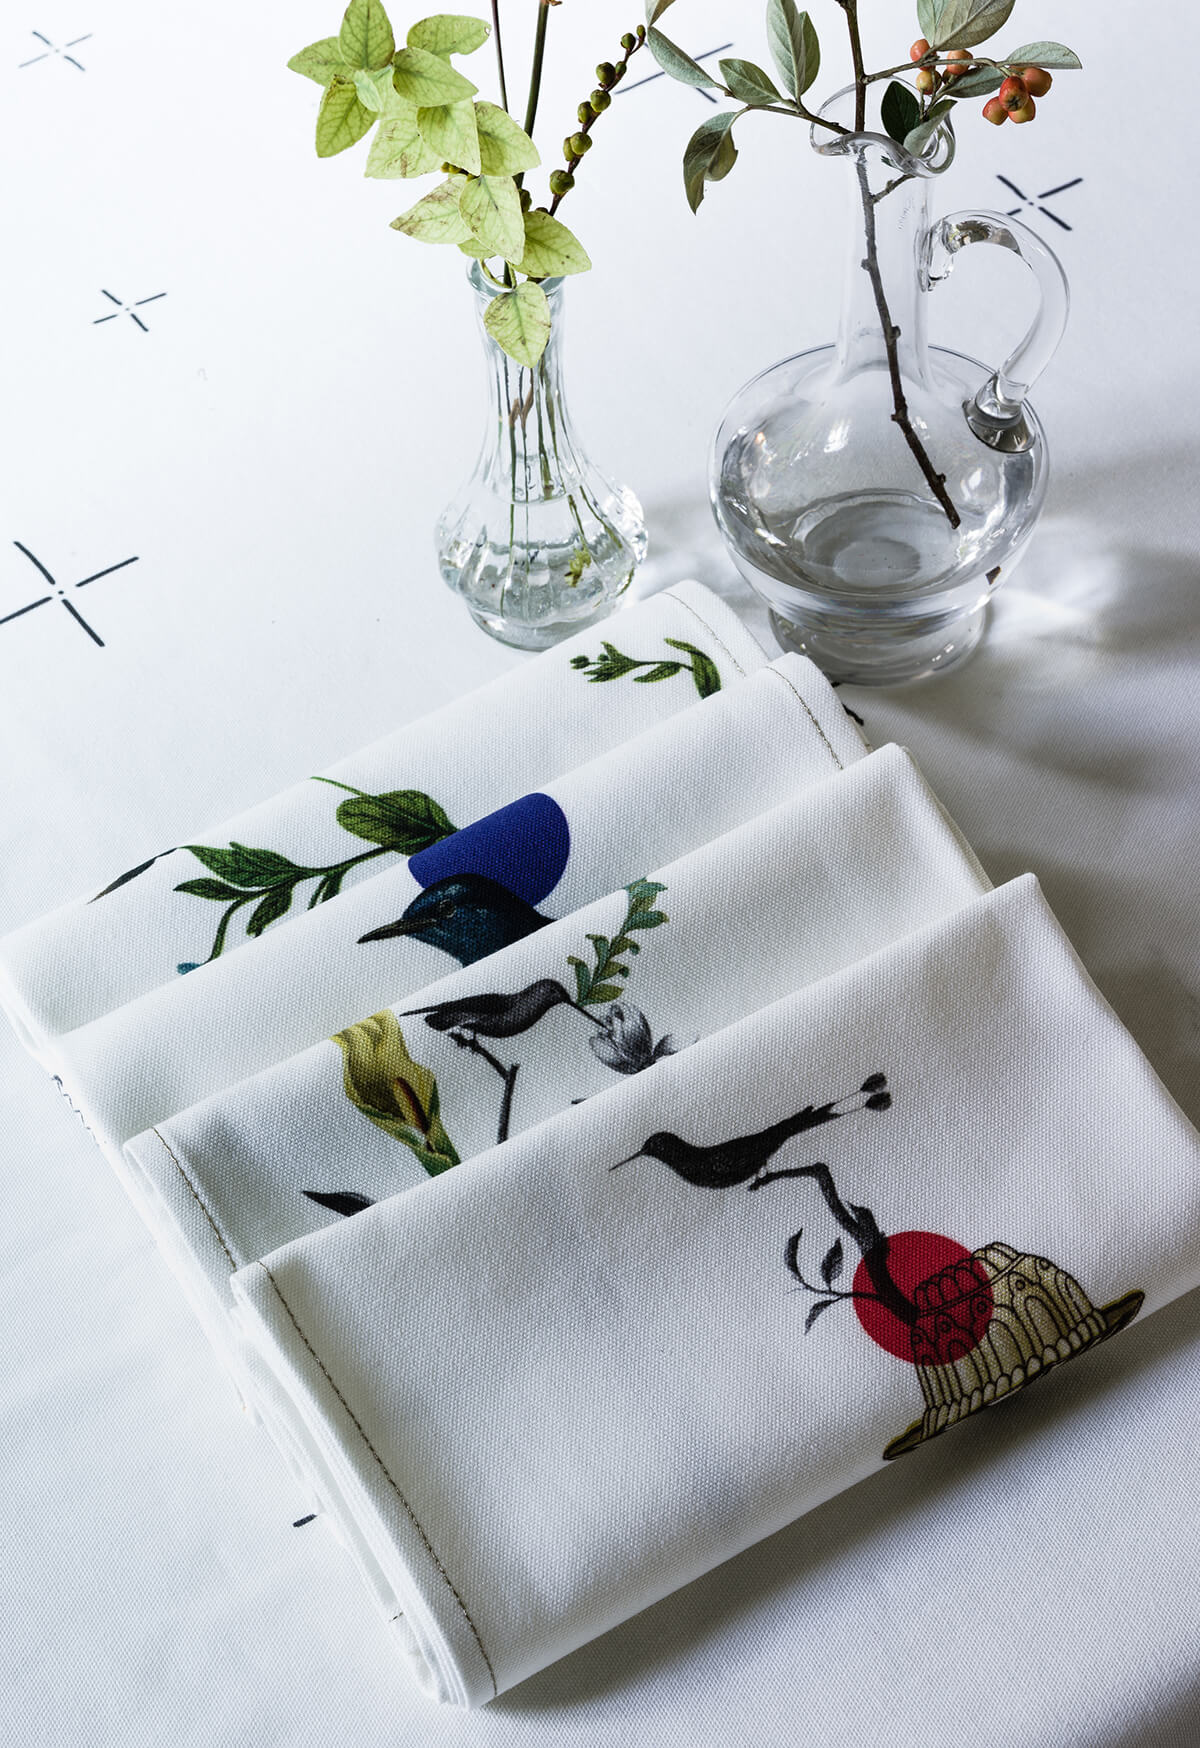 La redoute int rieurs x sam baron frenchy fancy for La redoute linge de table